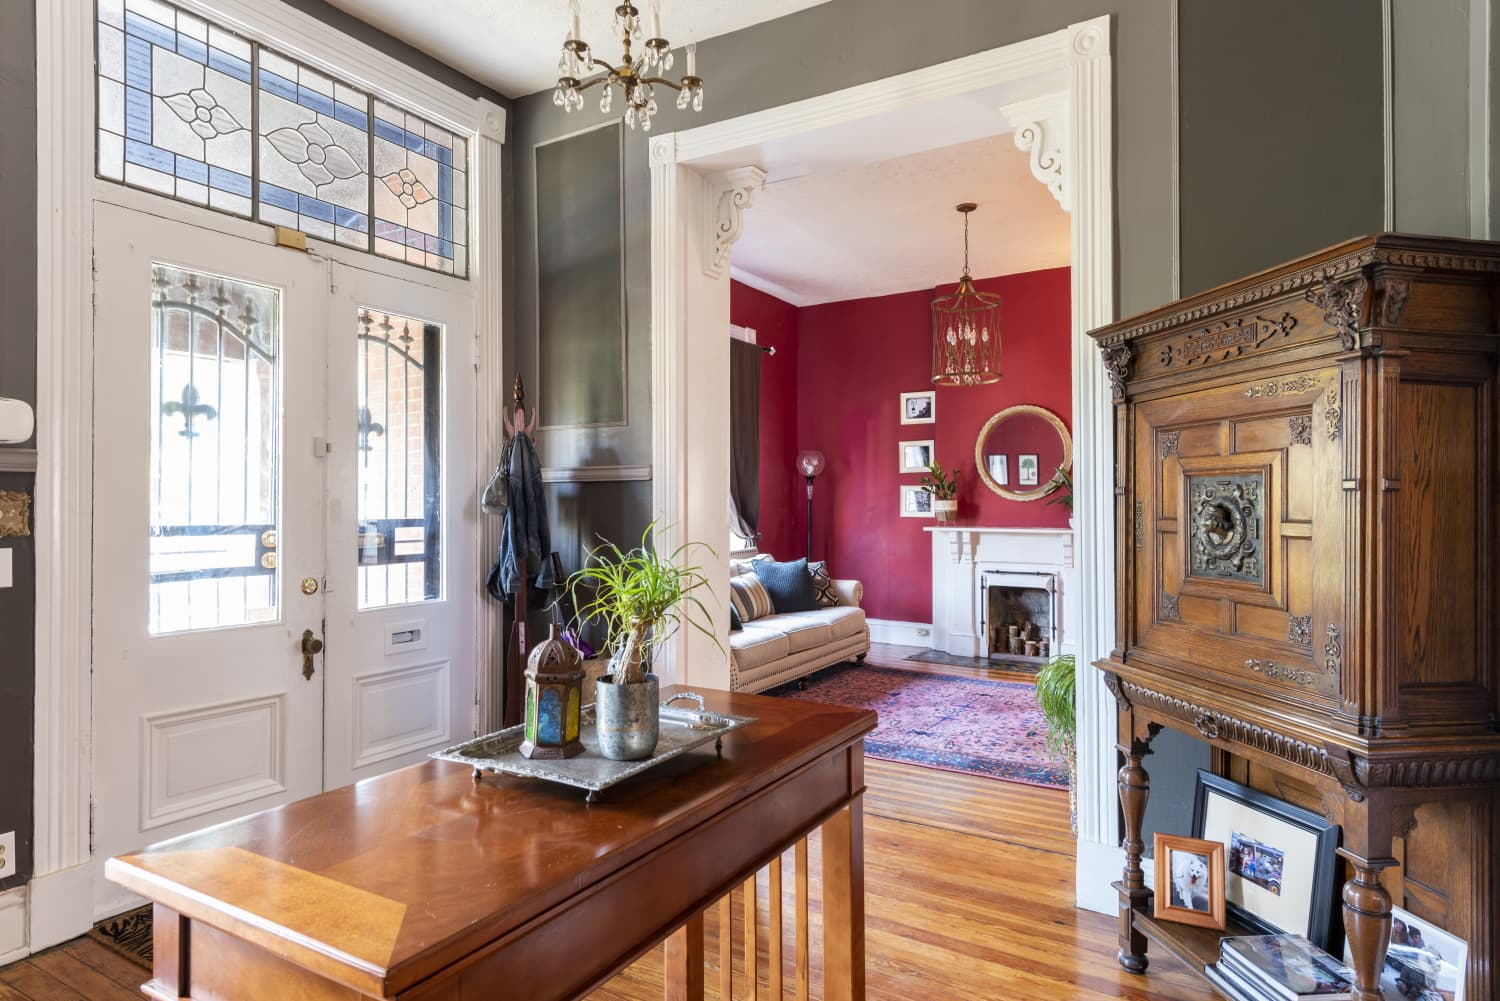 A Sprawling 132-Year-Old Renovated Victorian Is Filled With All Our Favorite Details (And 8 Fireplaces)